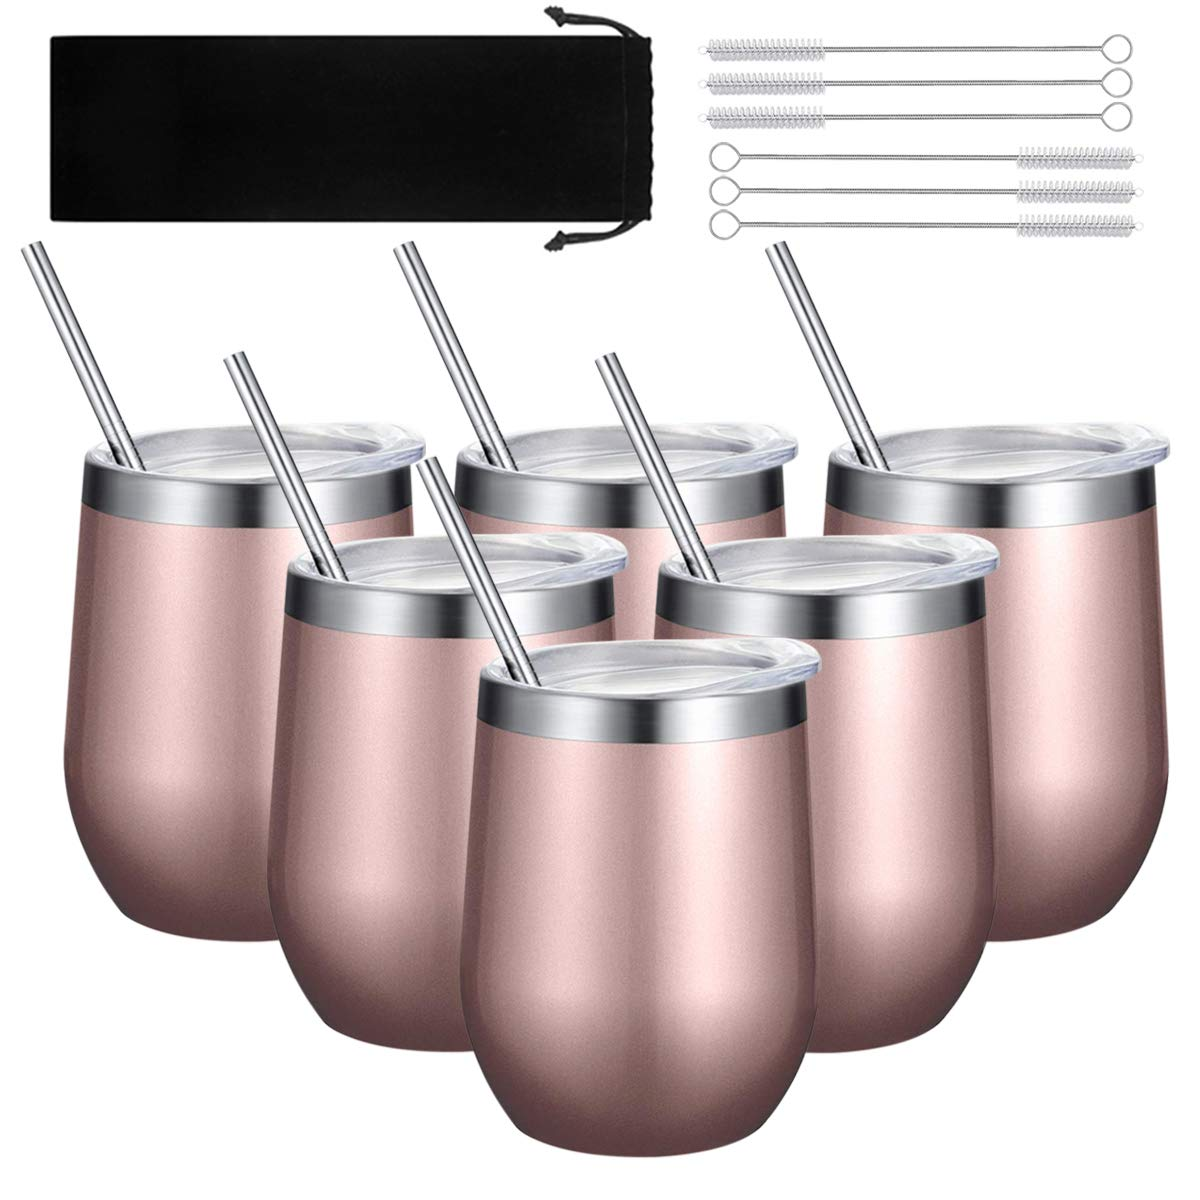 6 Sets Double-insulated Stemless Wine Tumbler Stainless Steel Unbreakable Wine Glass Cup Mug with Lids and Straws for Wine, Coffee, Drinks, Champagne, Cocktails, 12 Oz